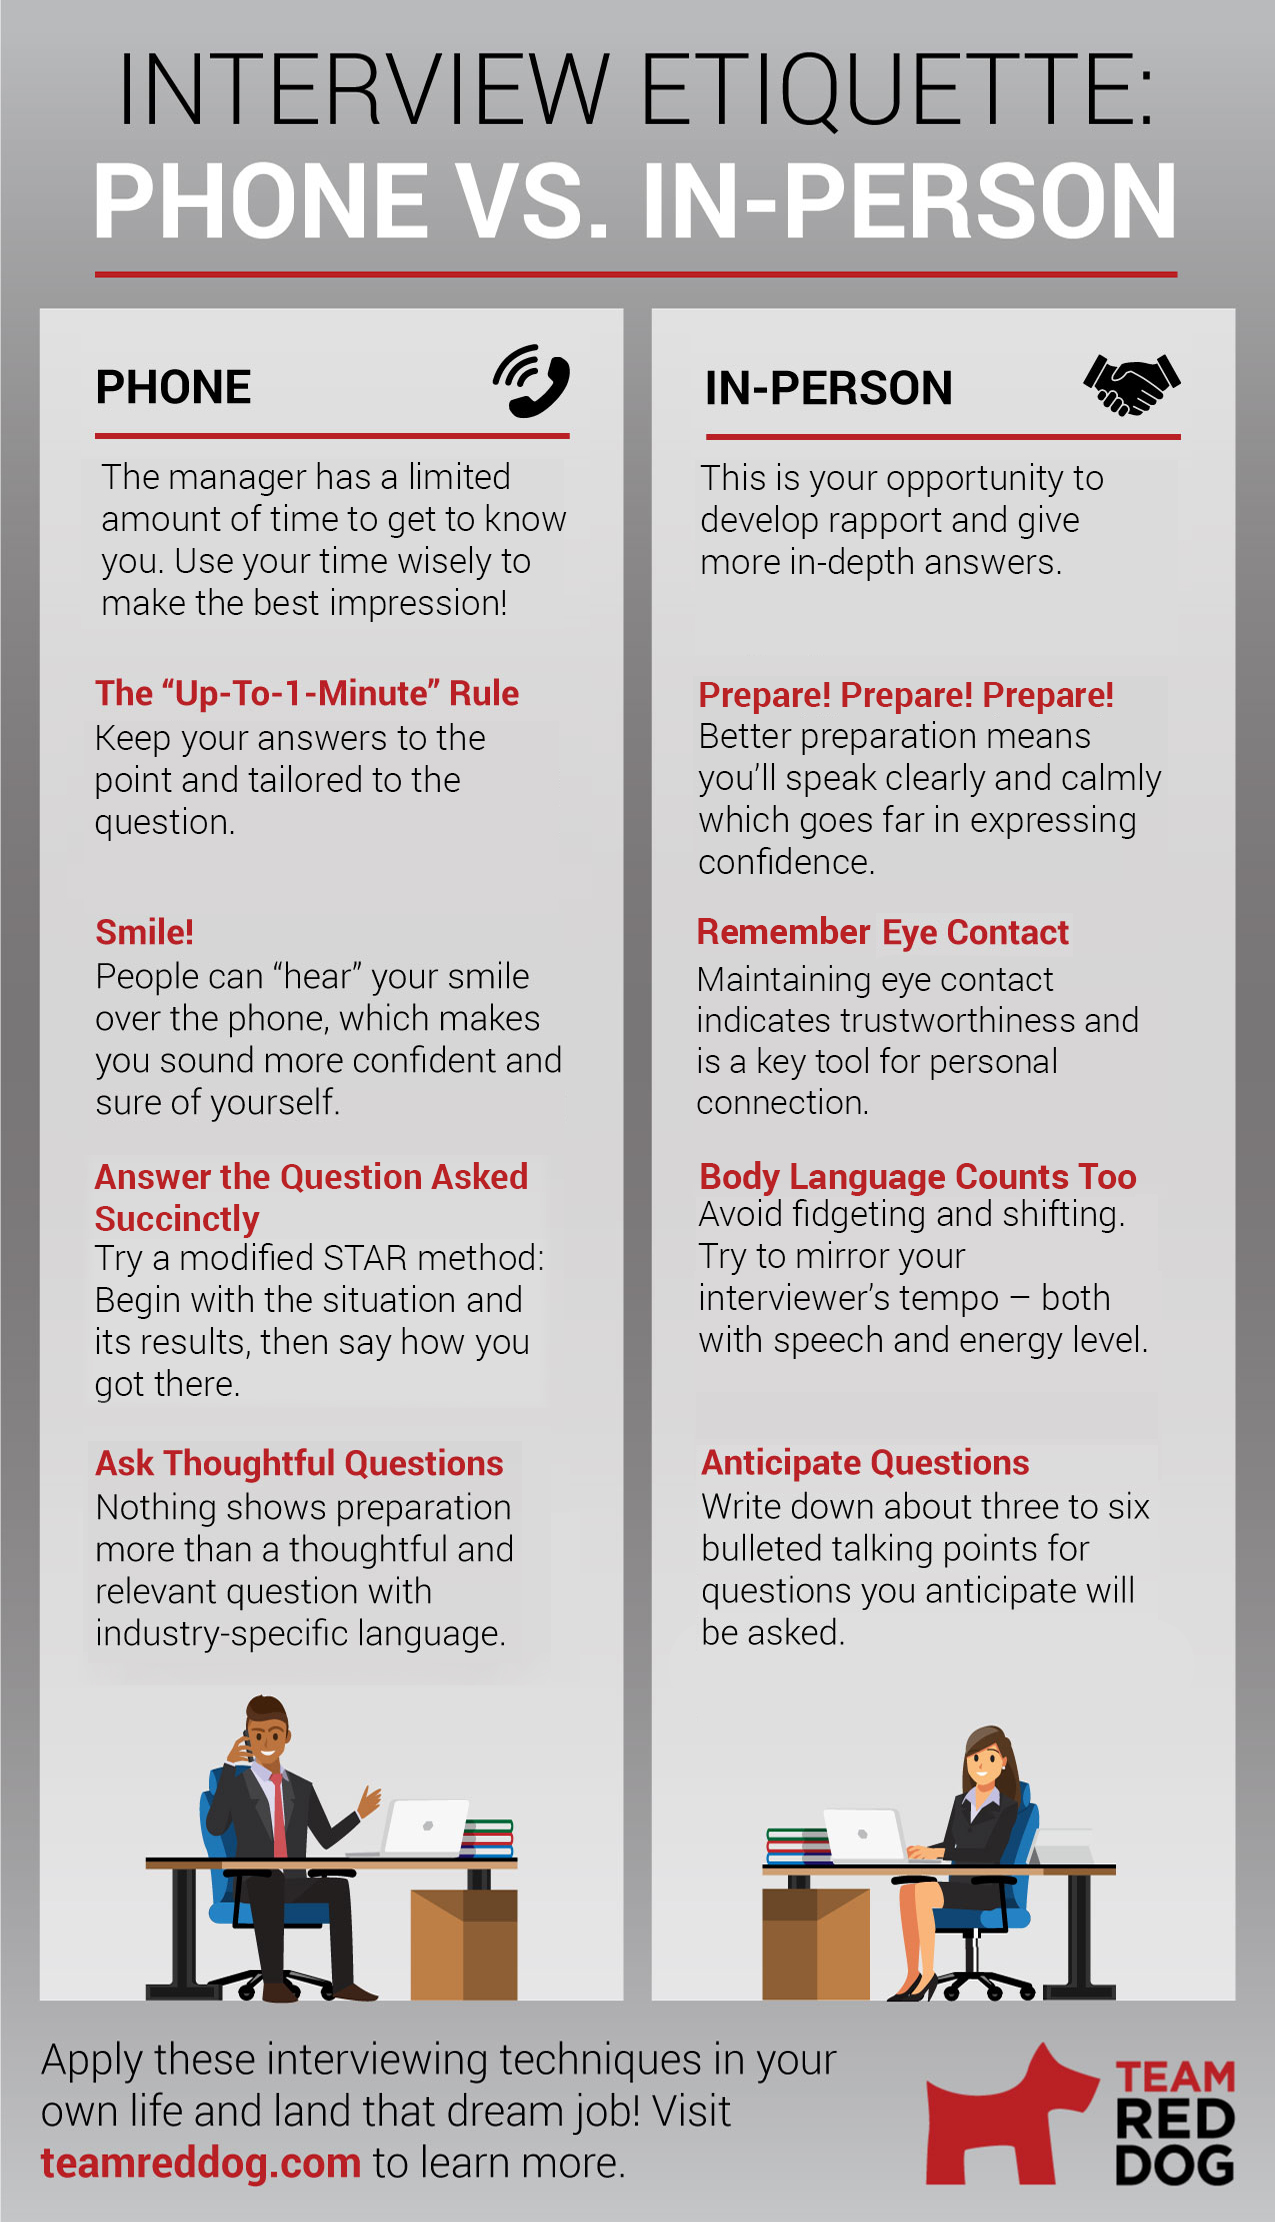 Interview Etiquette on phone vs in-person interviews